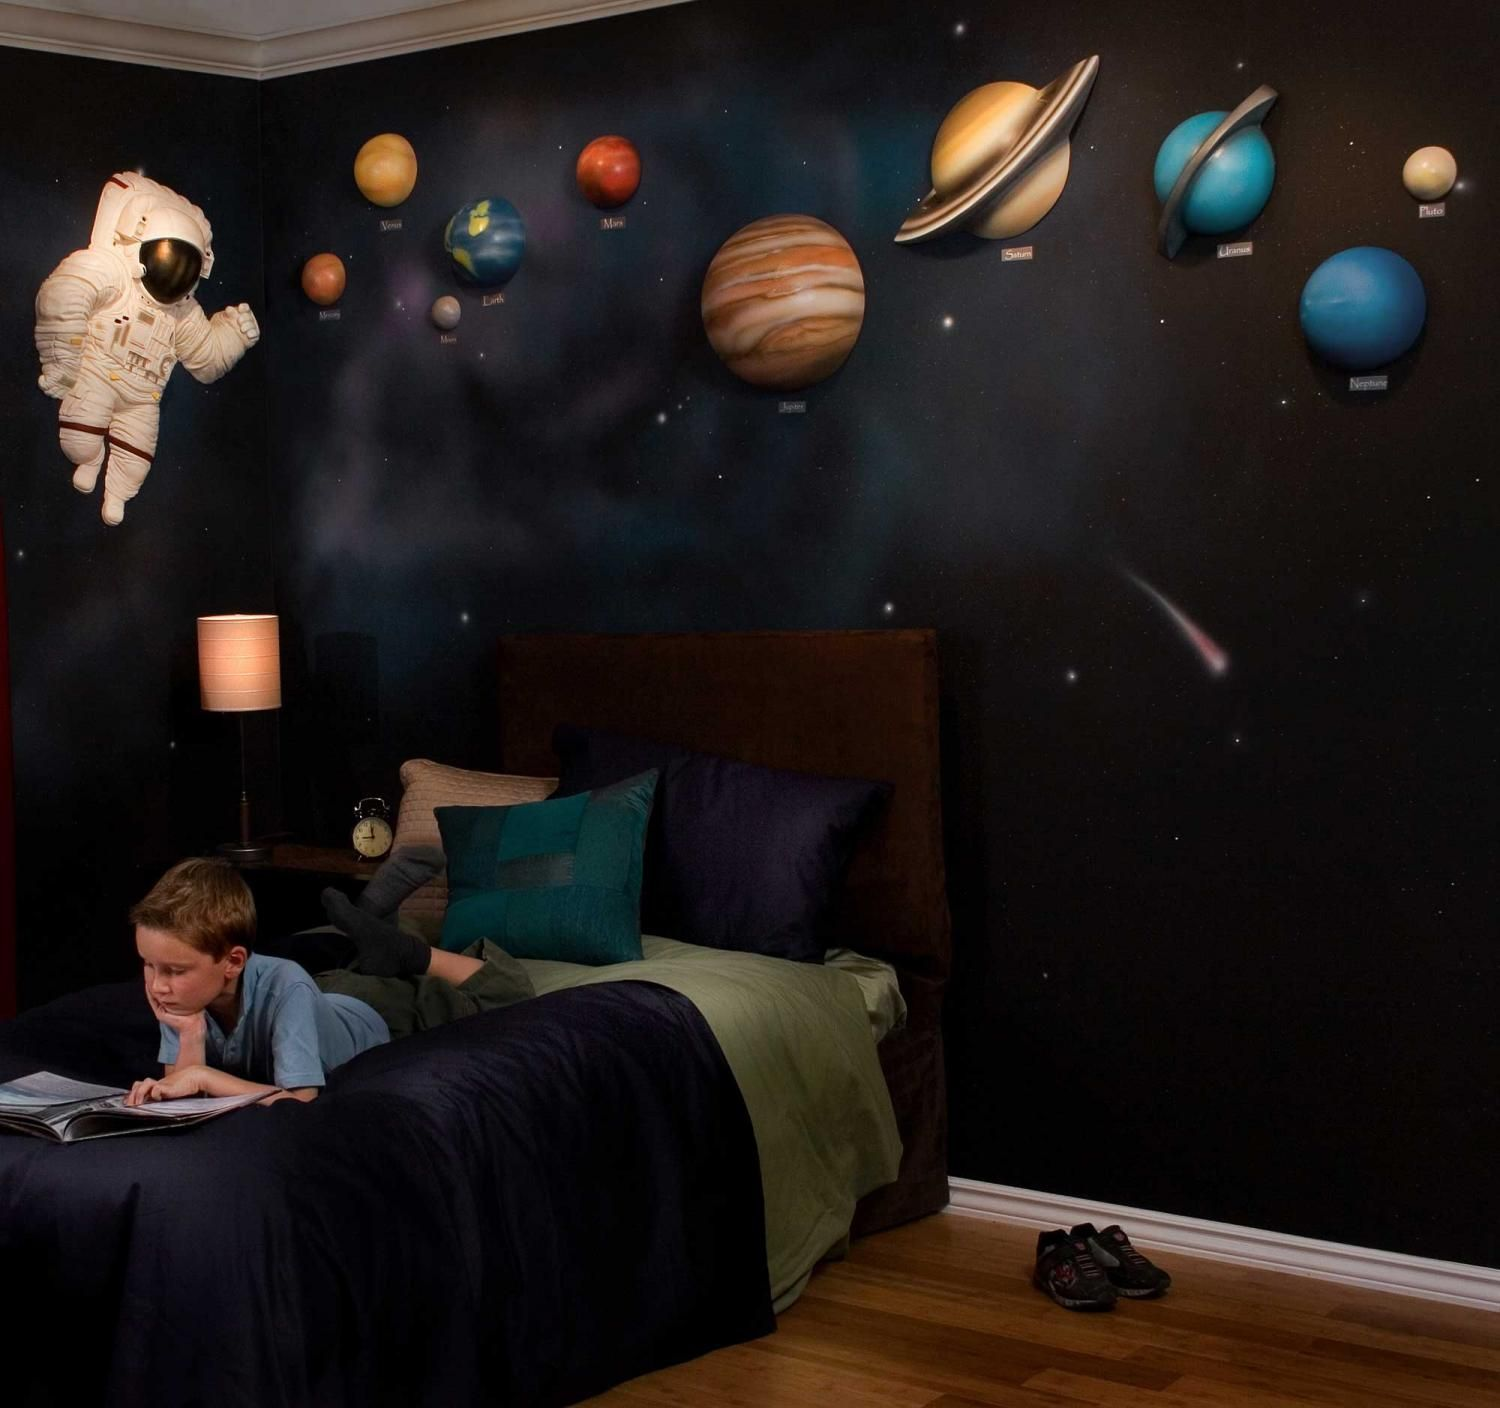 Solar system with space astronaut 3d wall art decor by for Outer space stage design